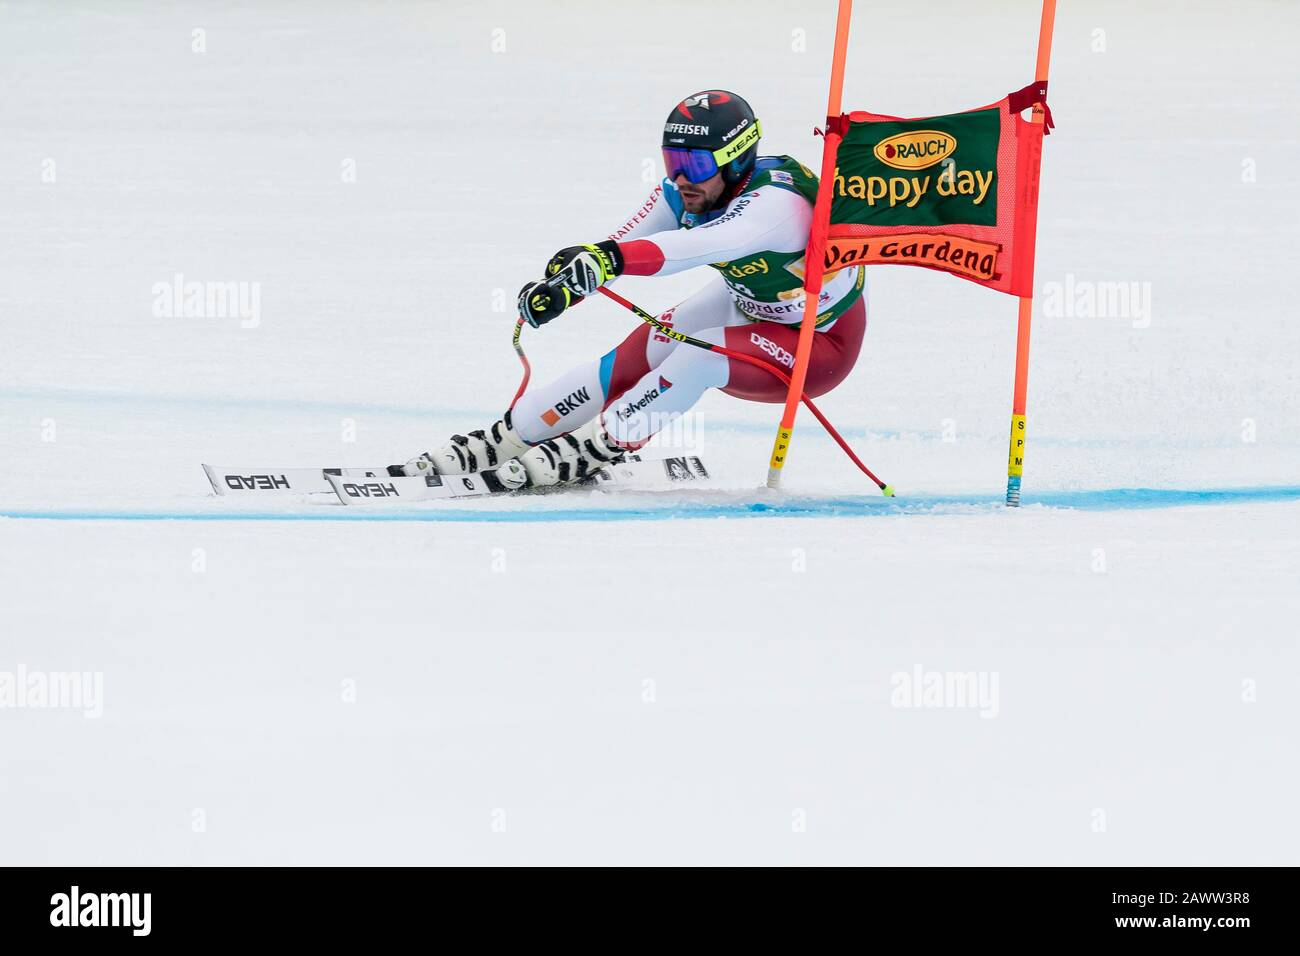 Val Gardena, Italy 20 December 2019. Feuz Beat (Sui) competing in the Audi Fis Alpine Skiing World Cup Men's Super-G Race  on the Saslong Course in th Stock Photo